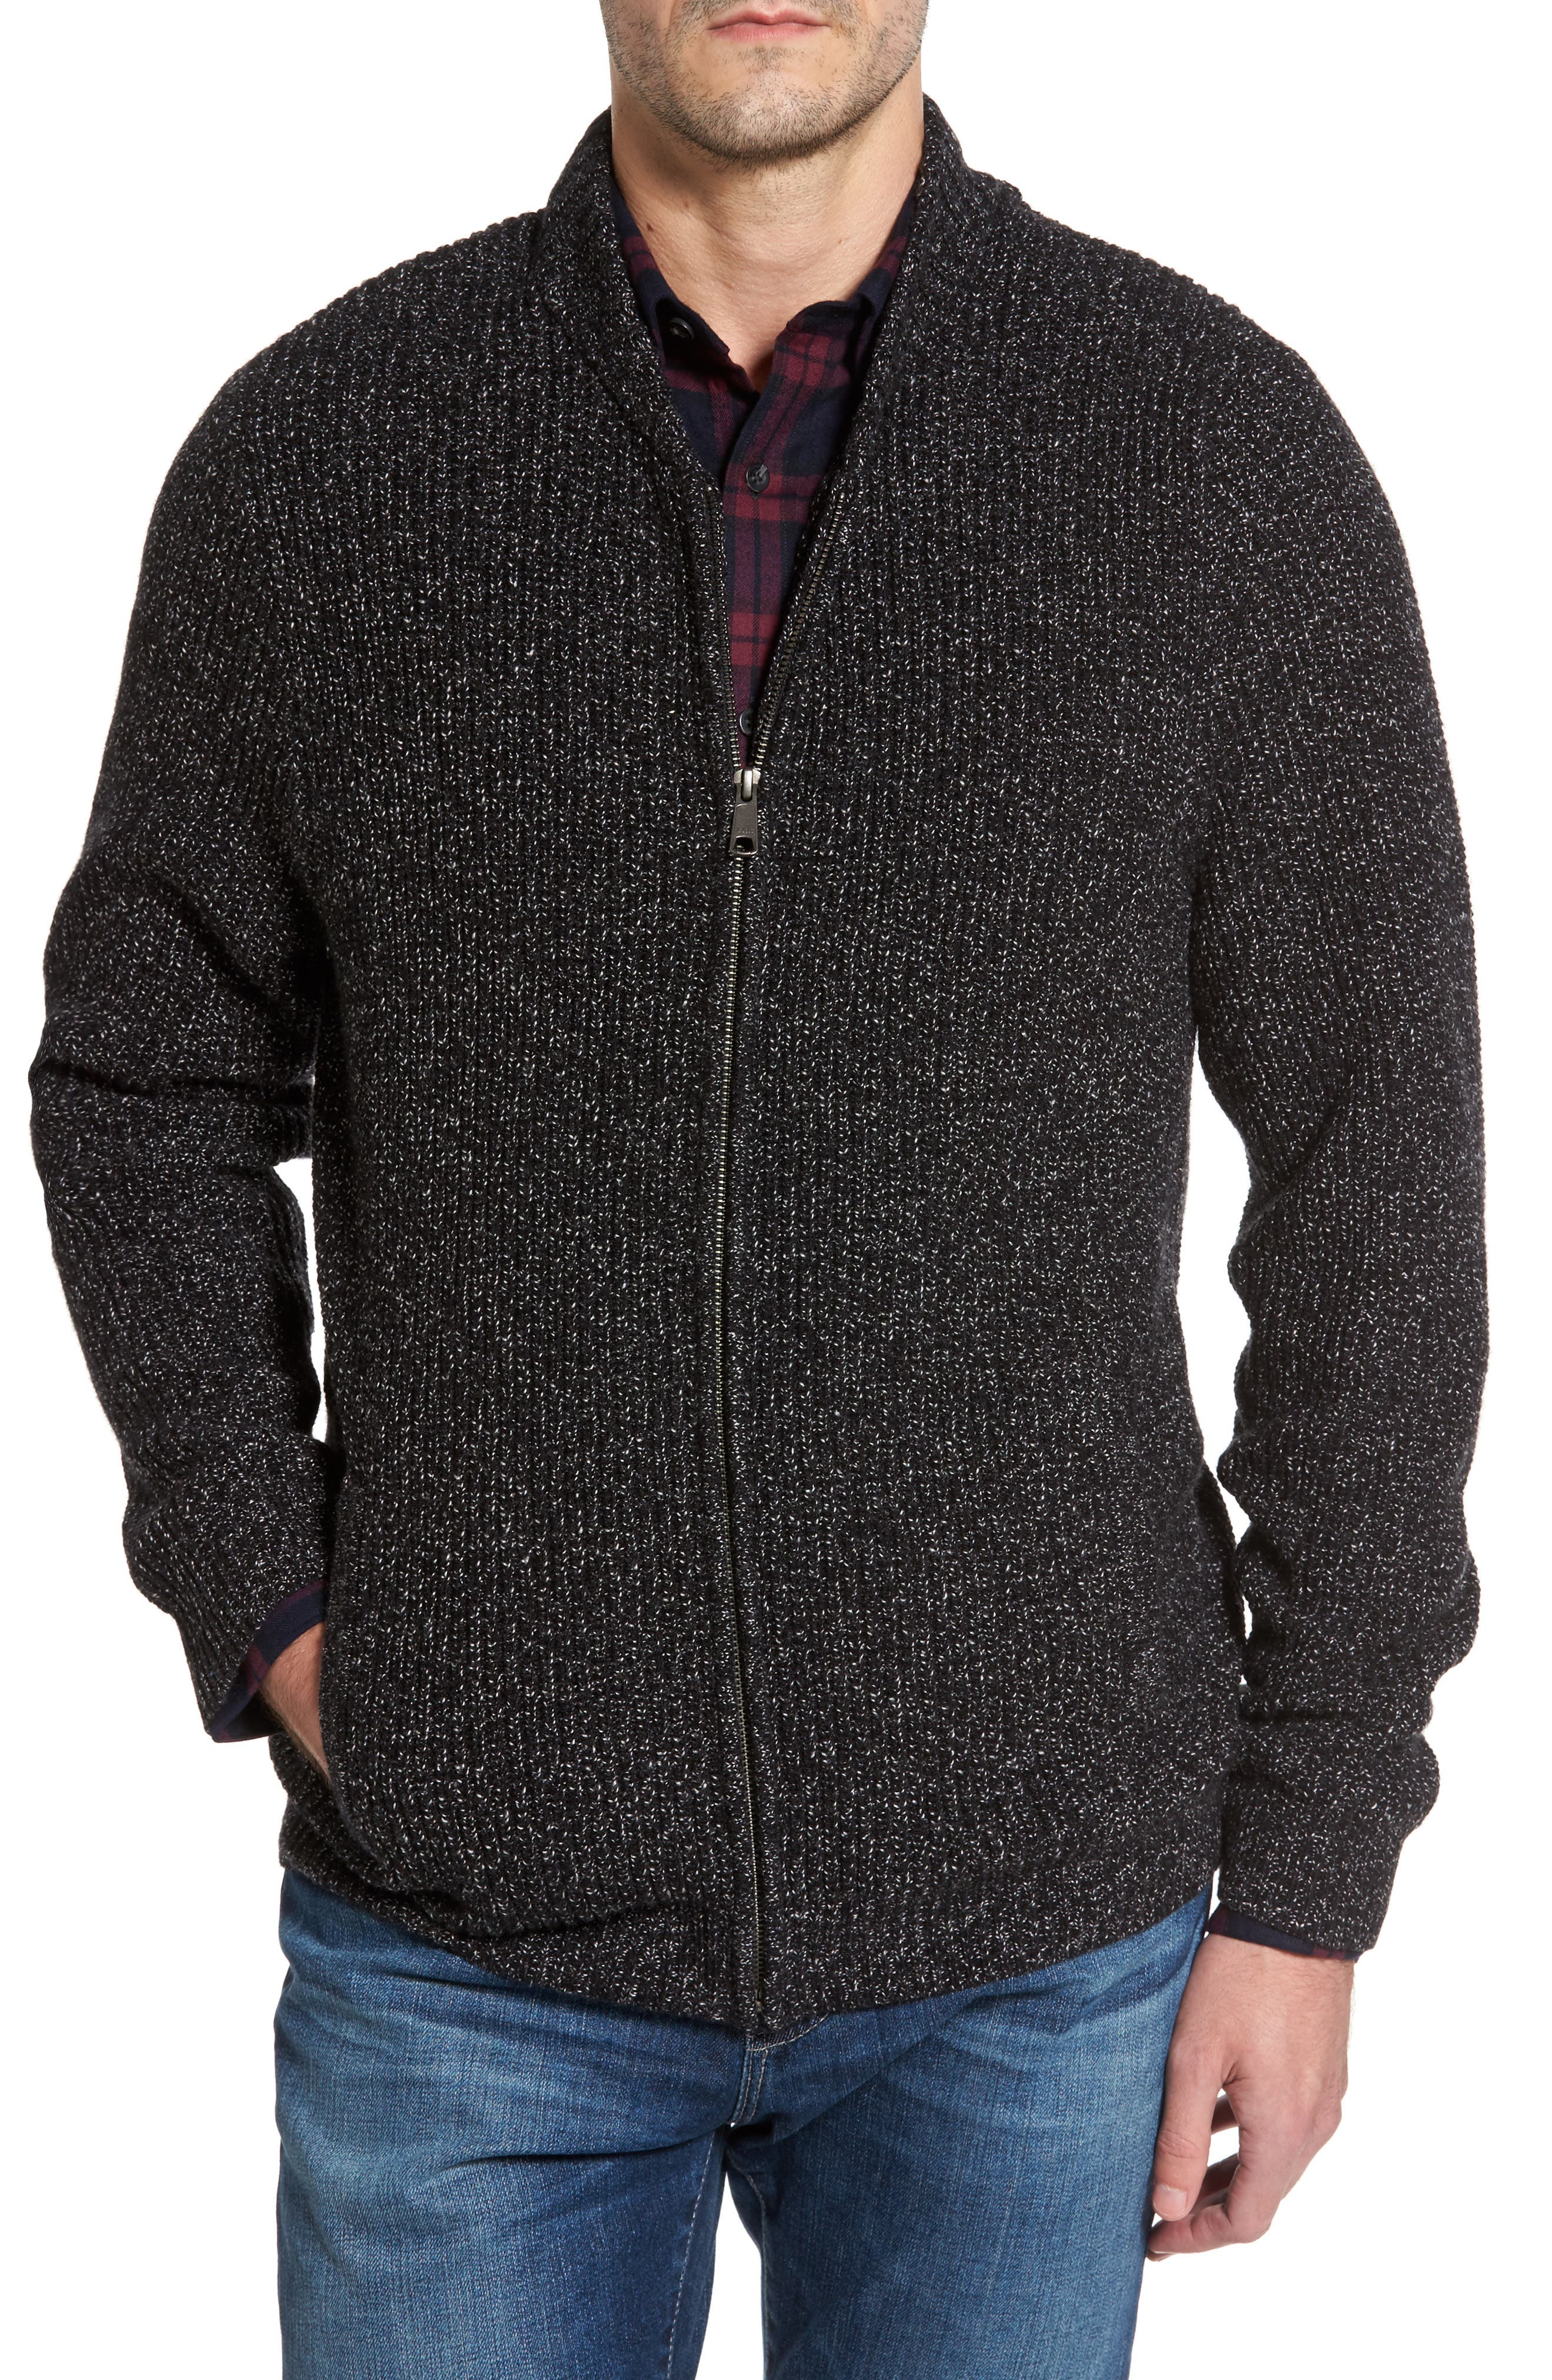 Alternate Image 1 Selected - Nordstrom Men's Shop Zip Front Cardigan